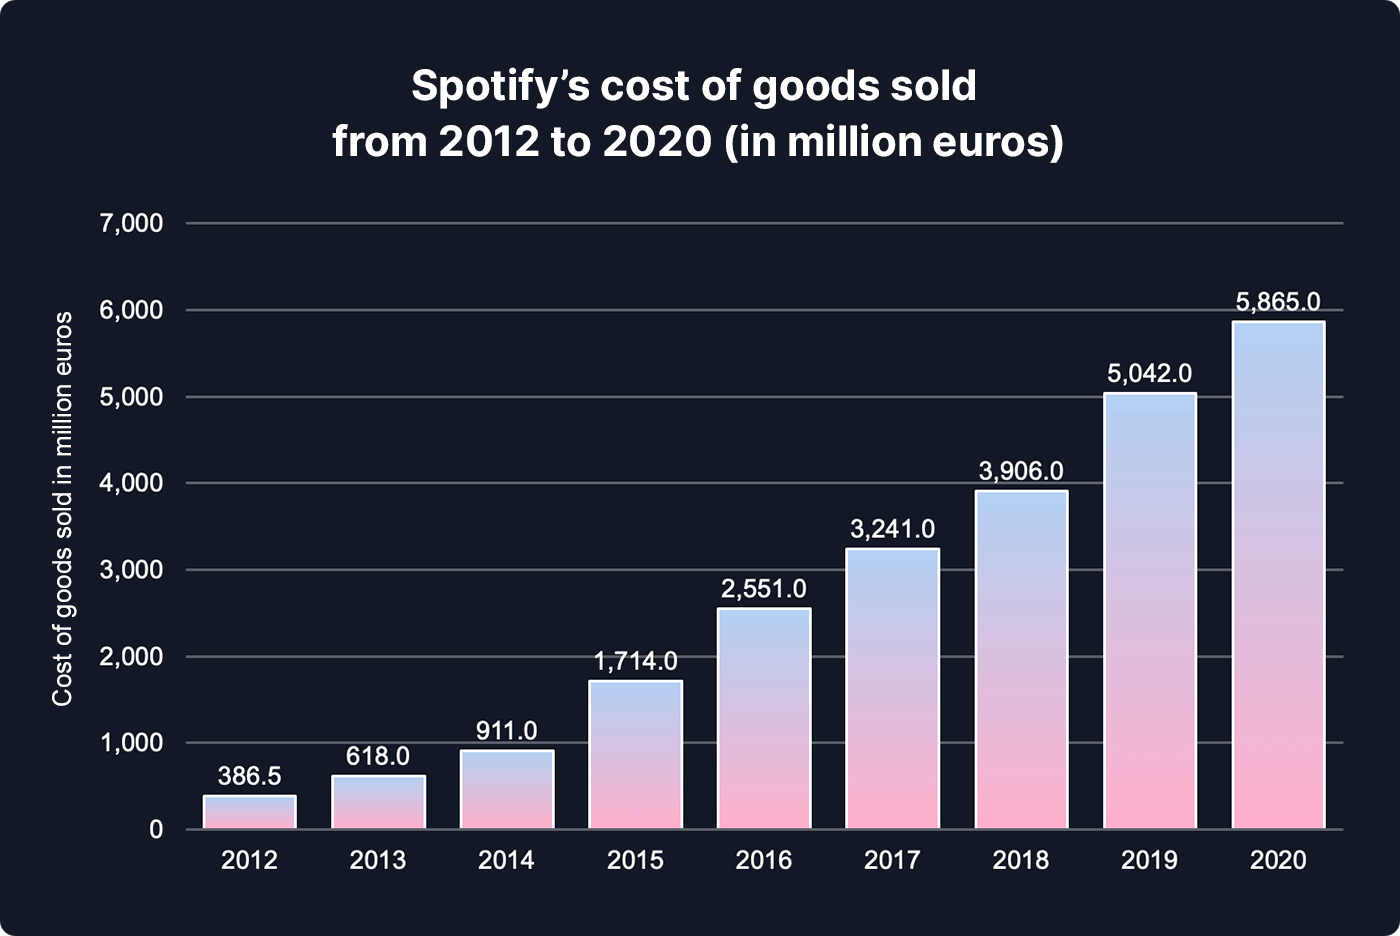 Chart showing Spotify's cost of goods sold from 2012 to 2020 in million euros